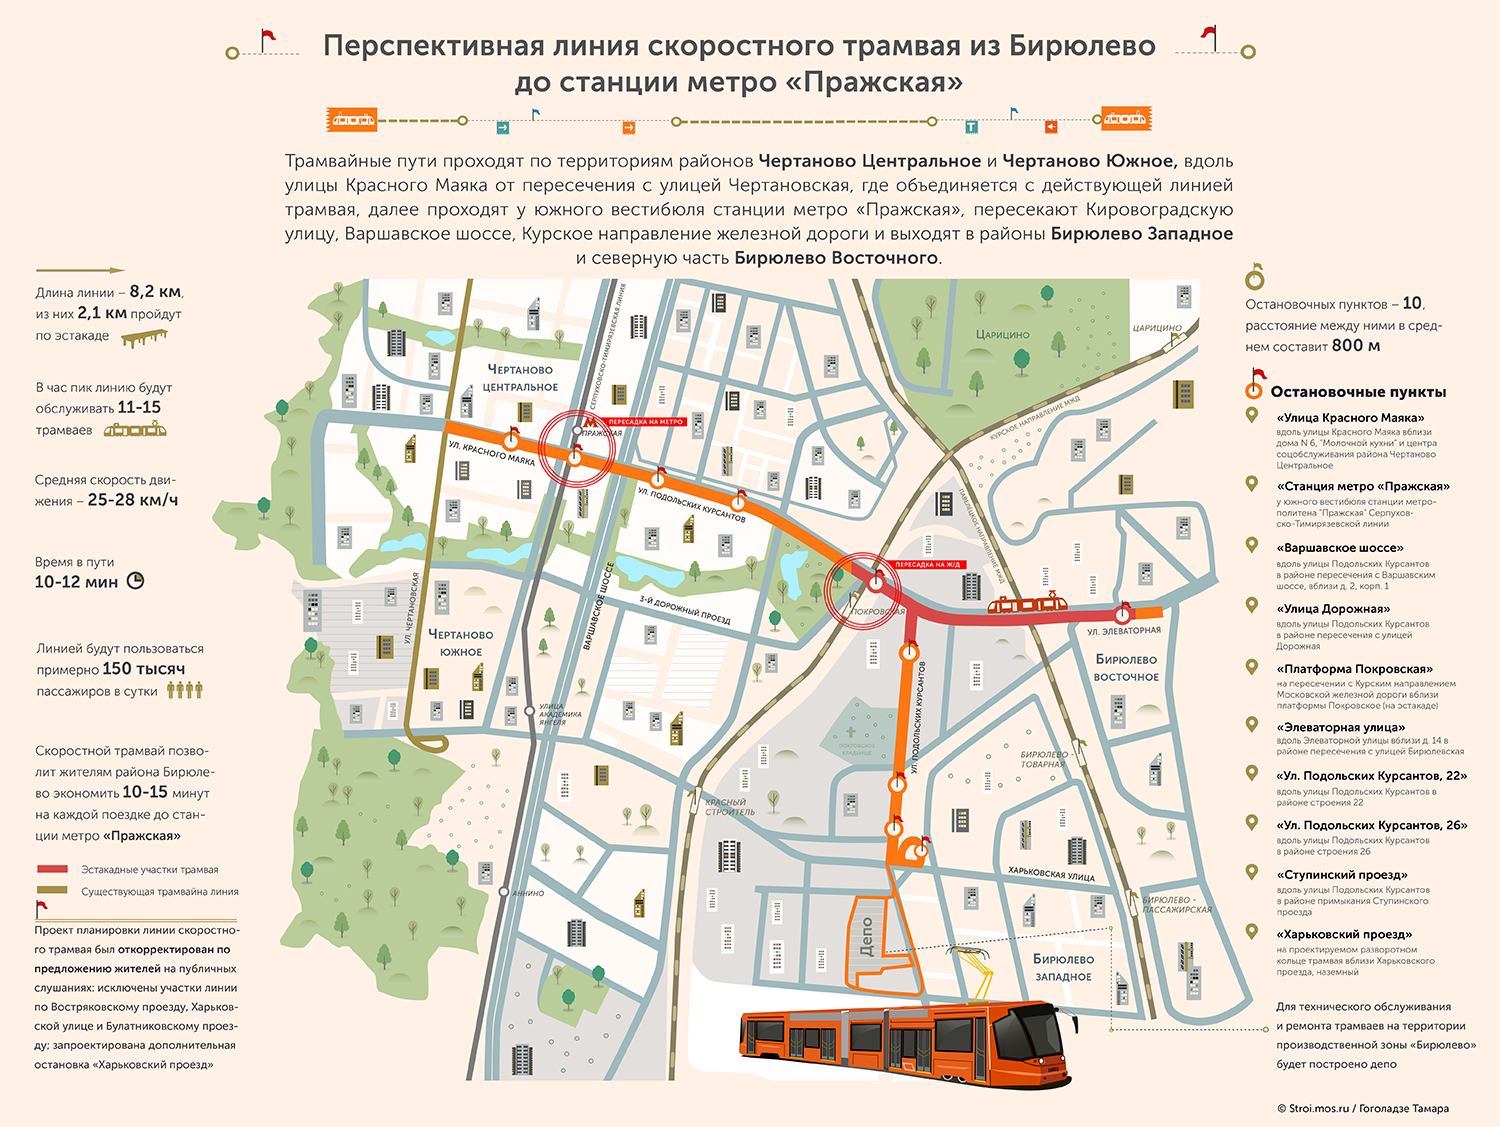 Moscow tram line Byrulyovo.png